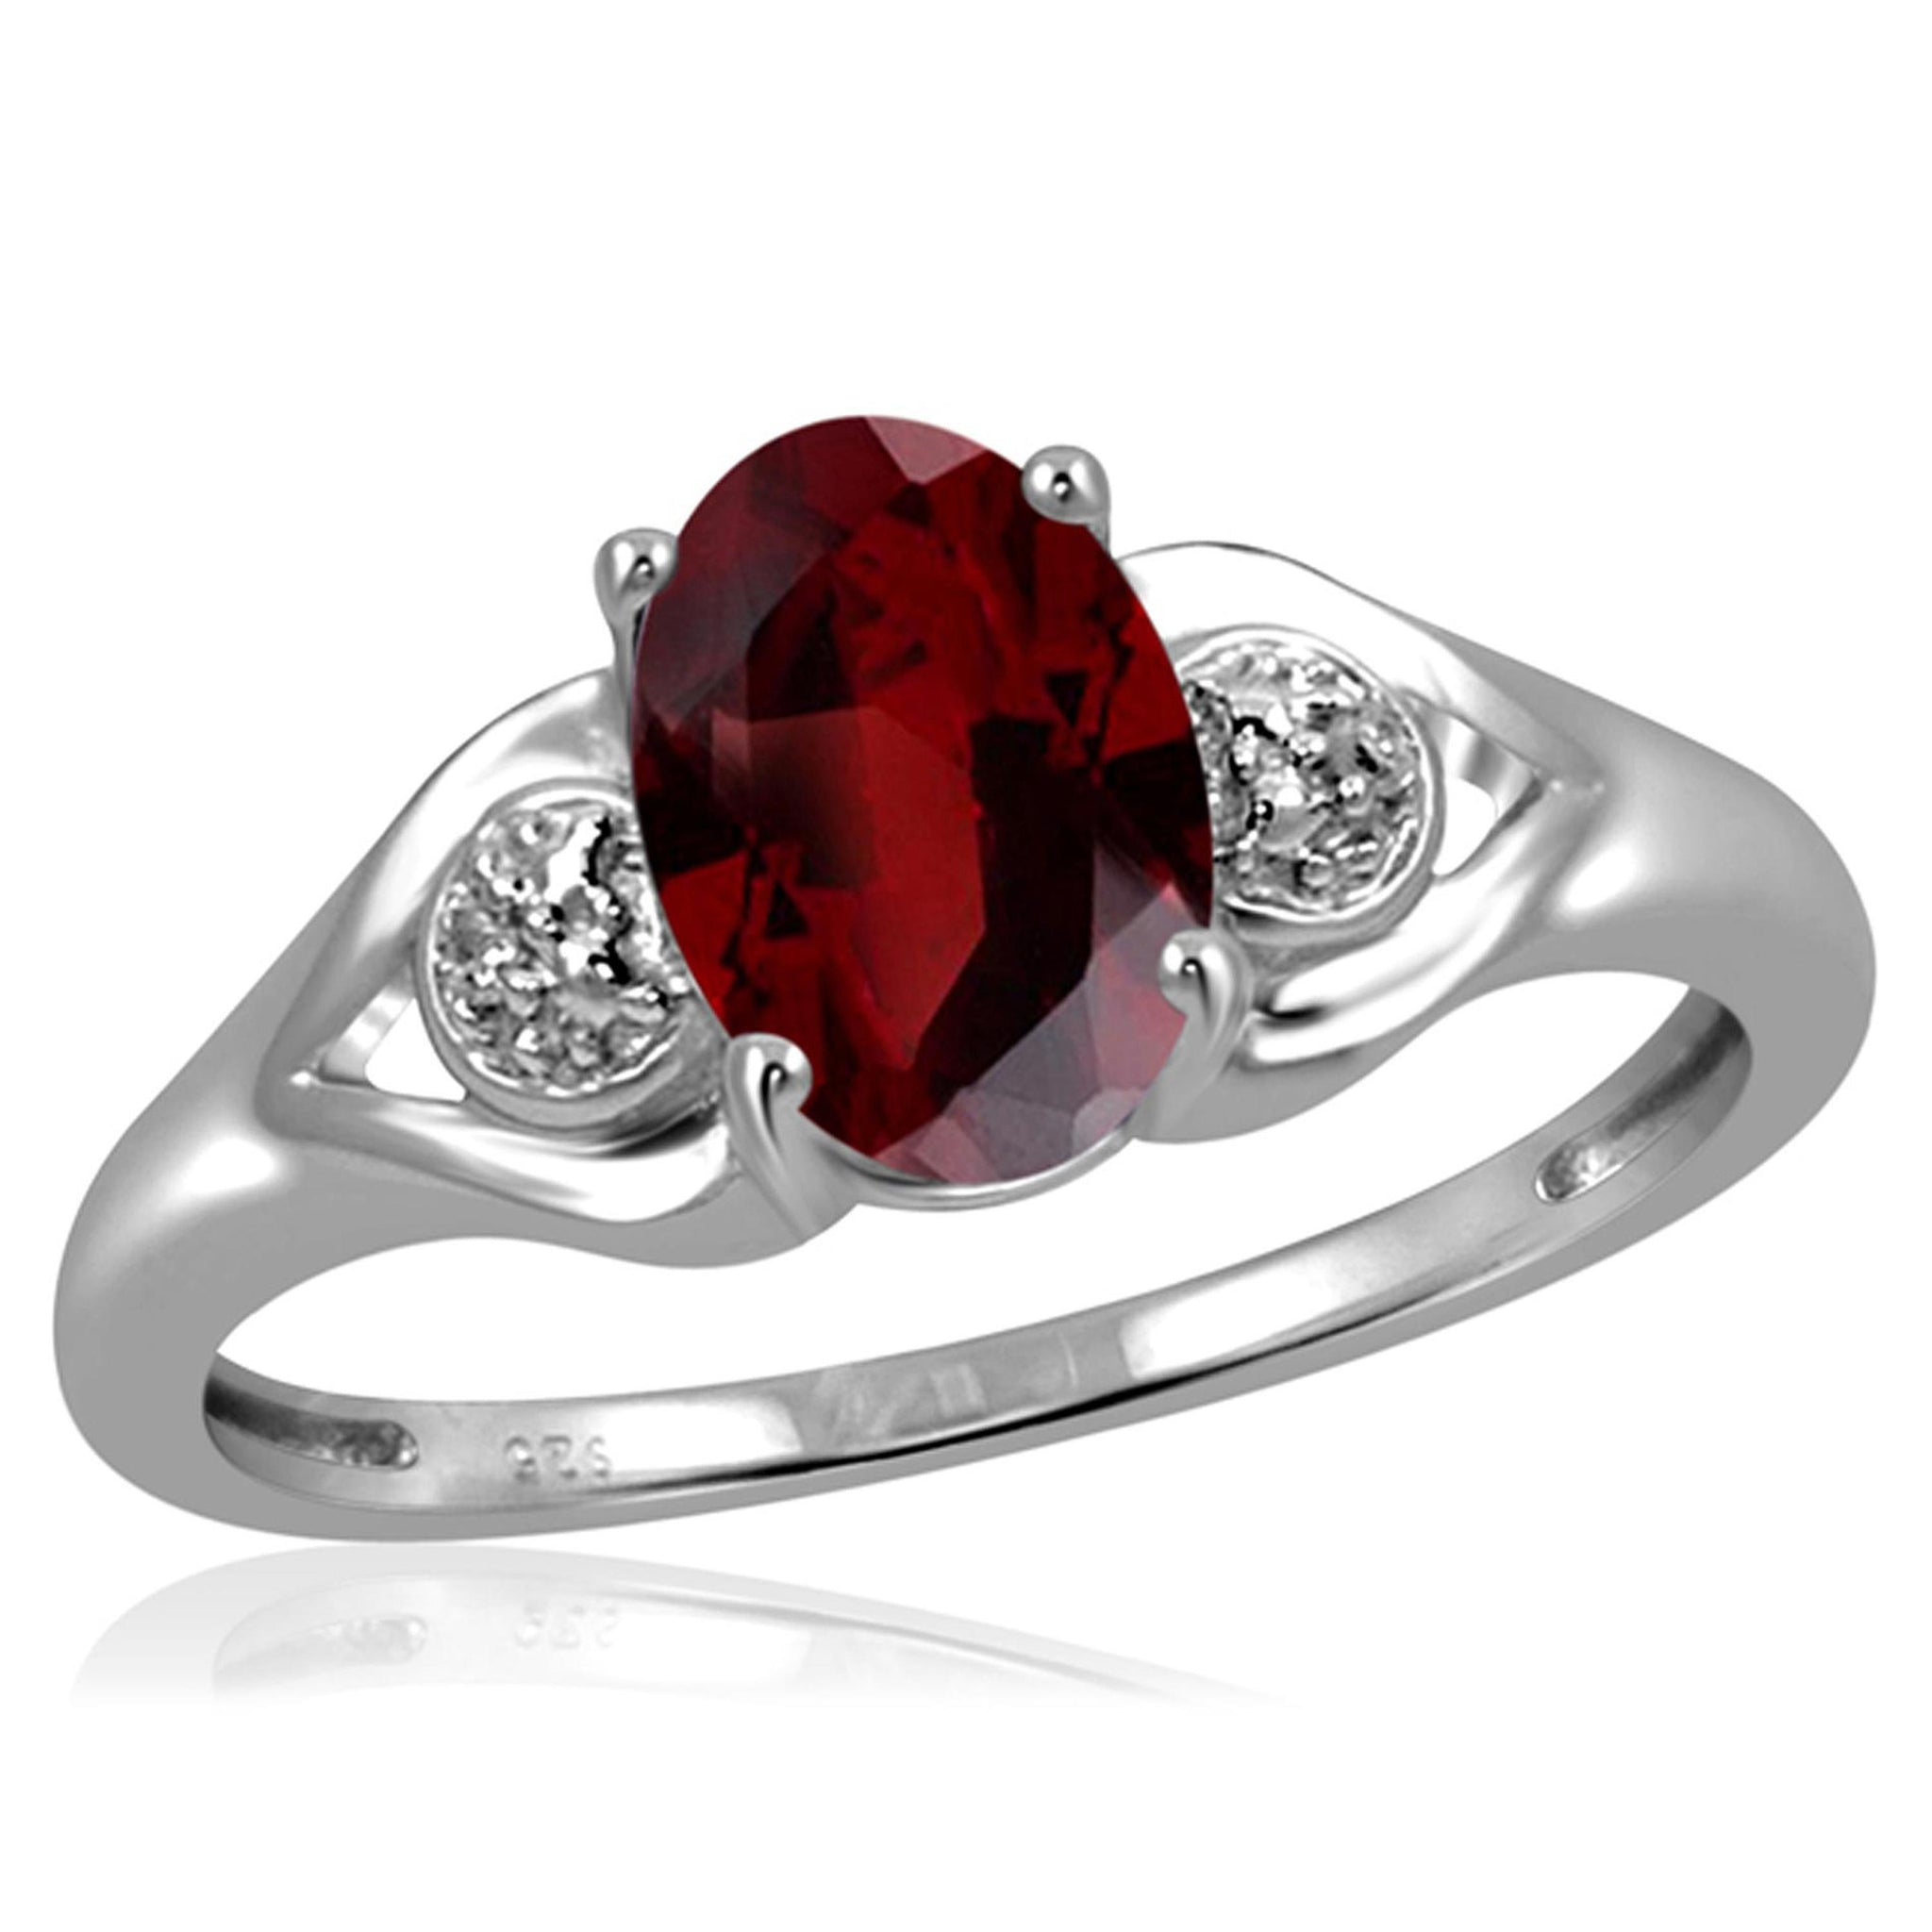 JewelonFire 1 1/2 Carat T.G.W. Garnet And White Diamond Accent Sterling Silver Ring - Assorted Colors